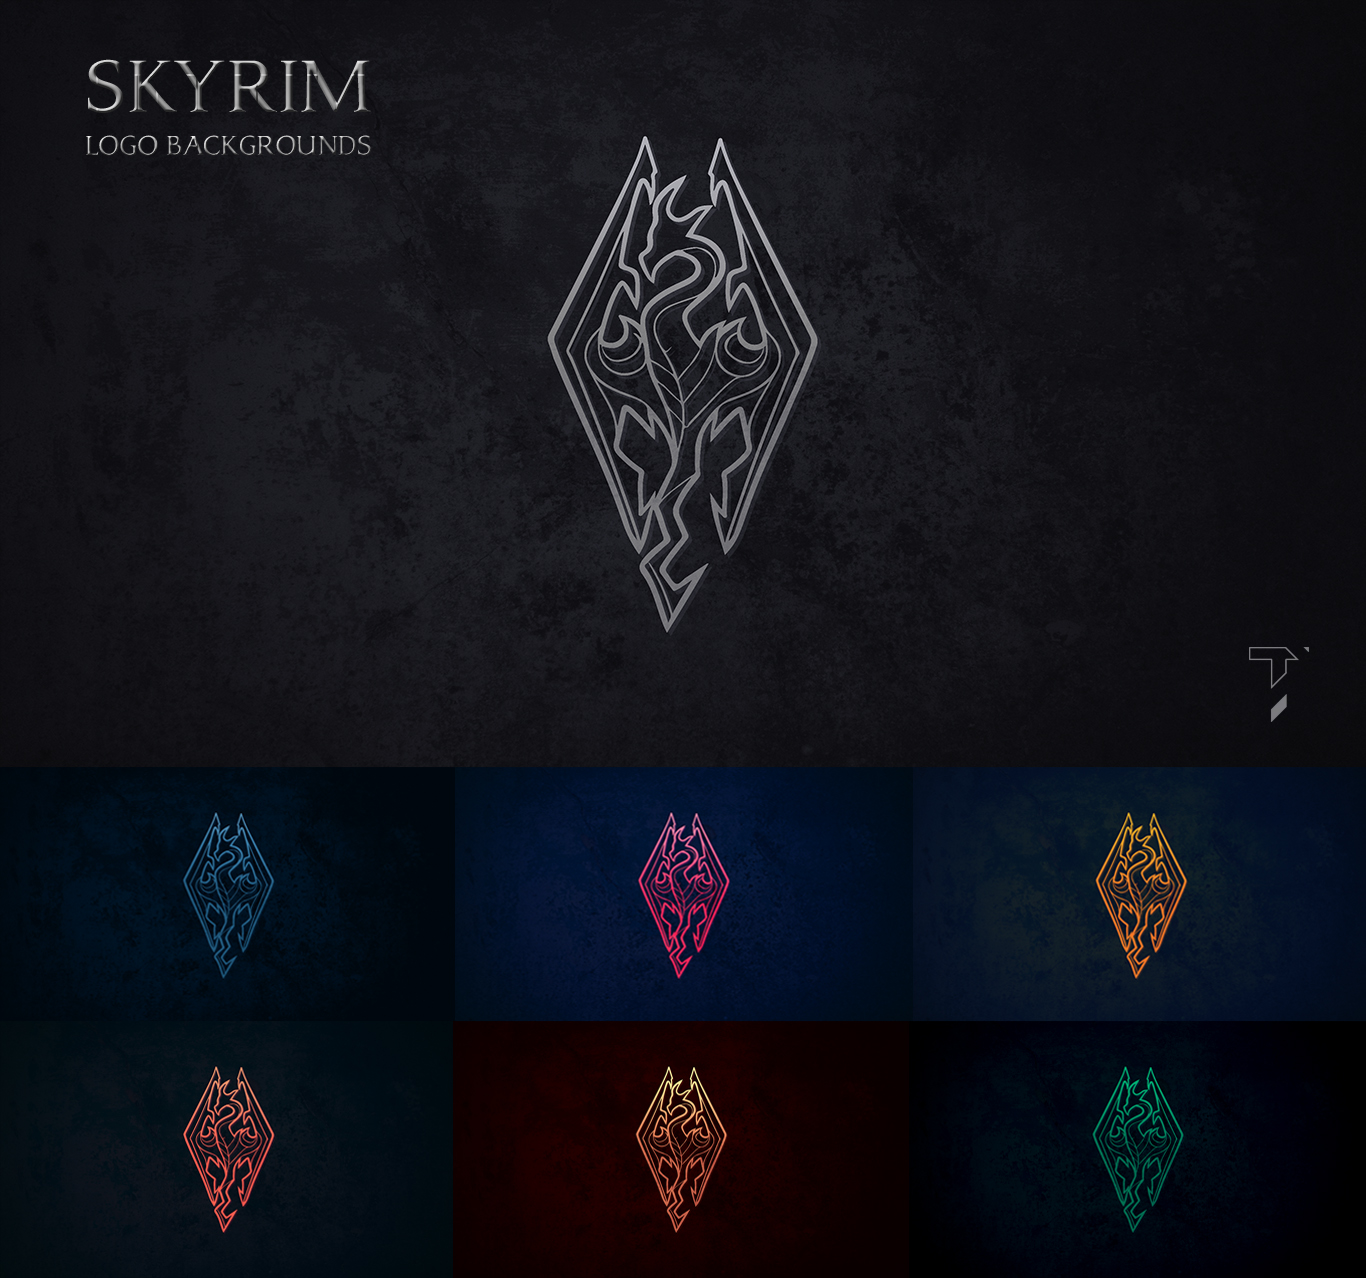 Skyrim How To Interior Decorate With Console Commands